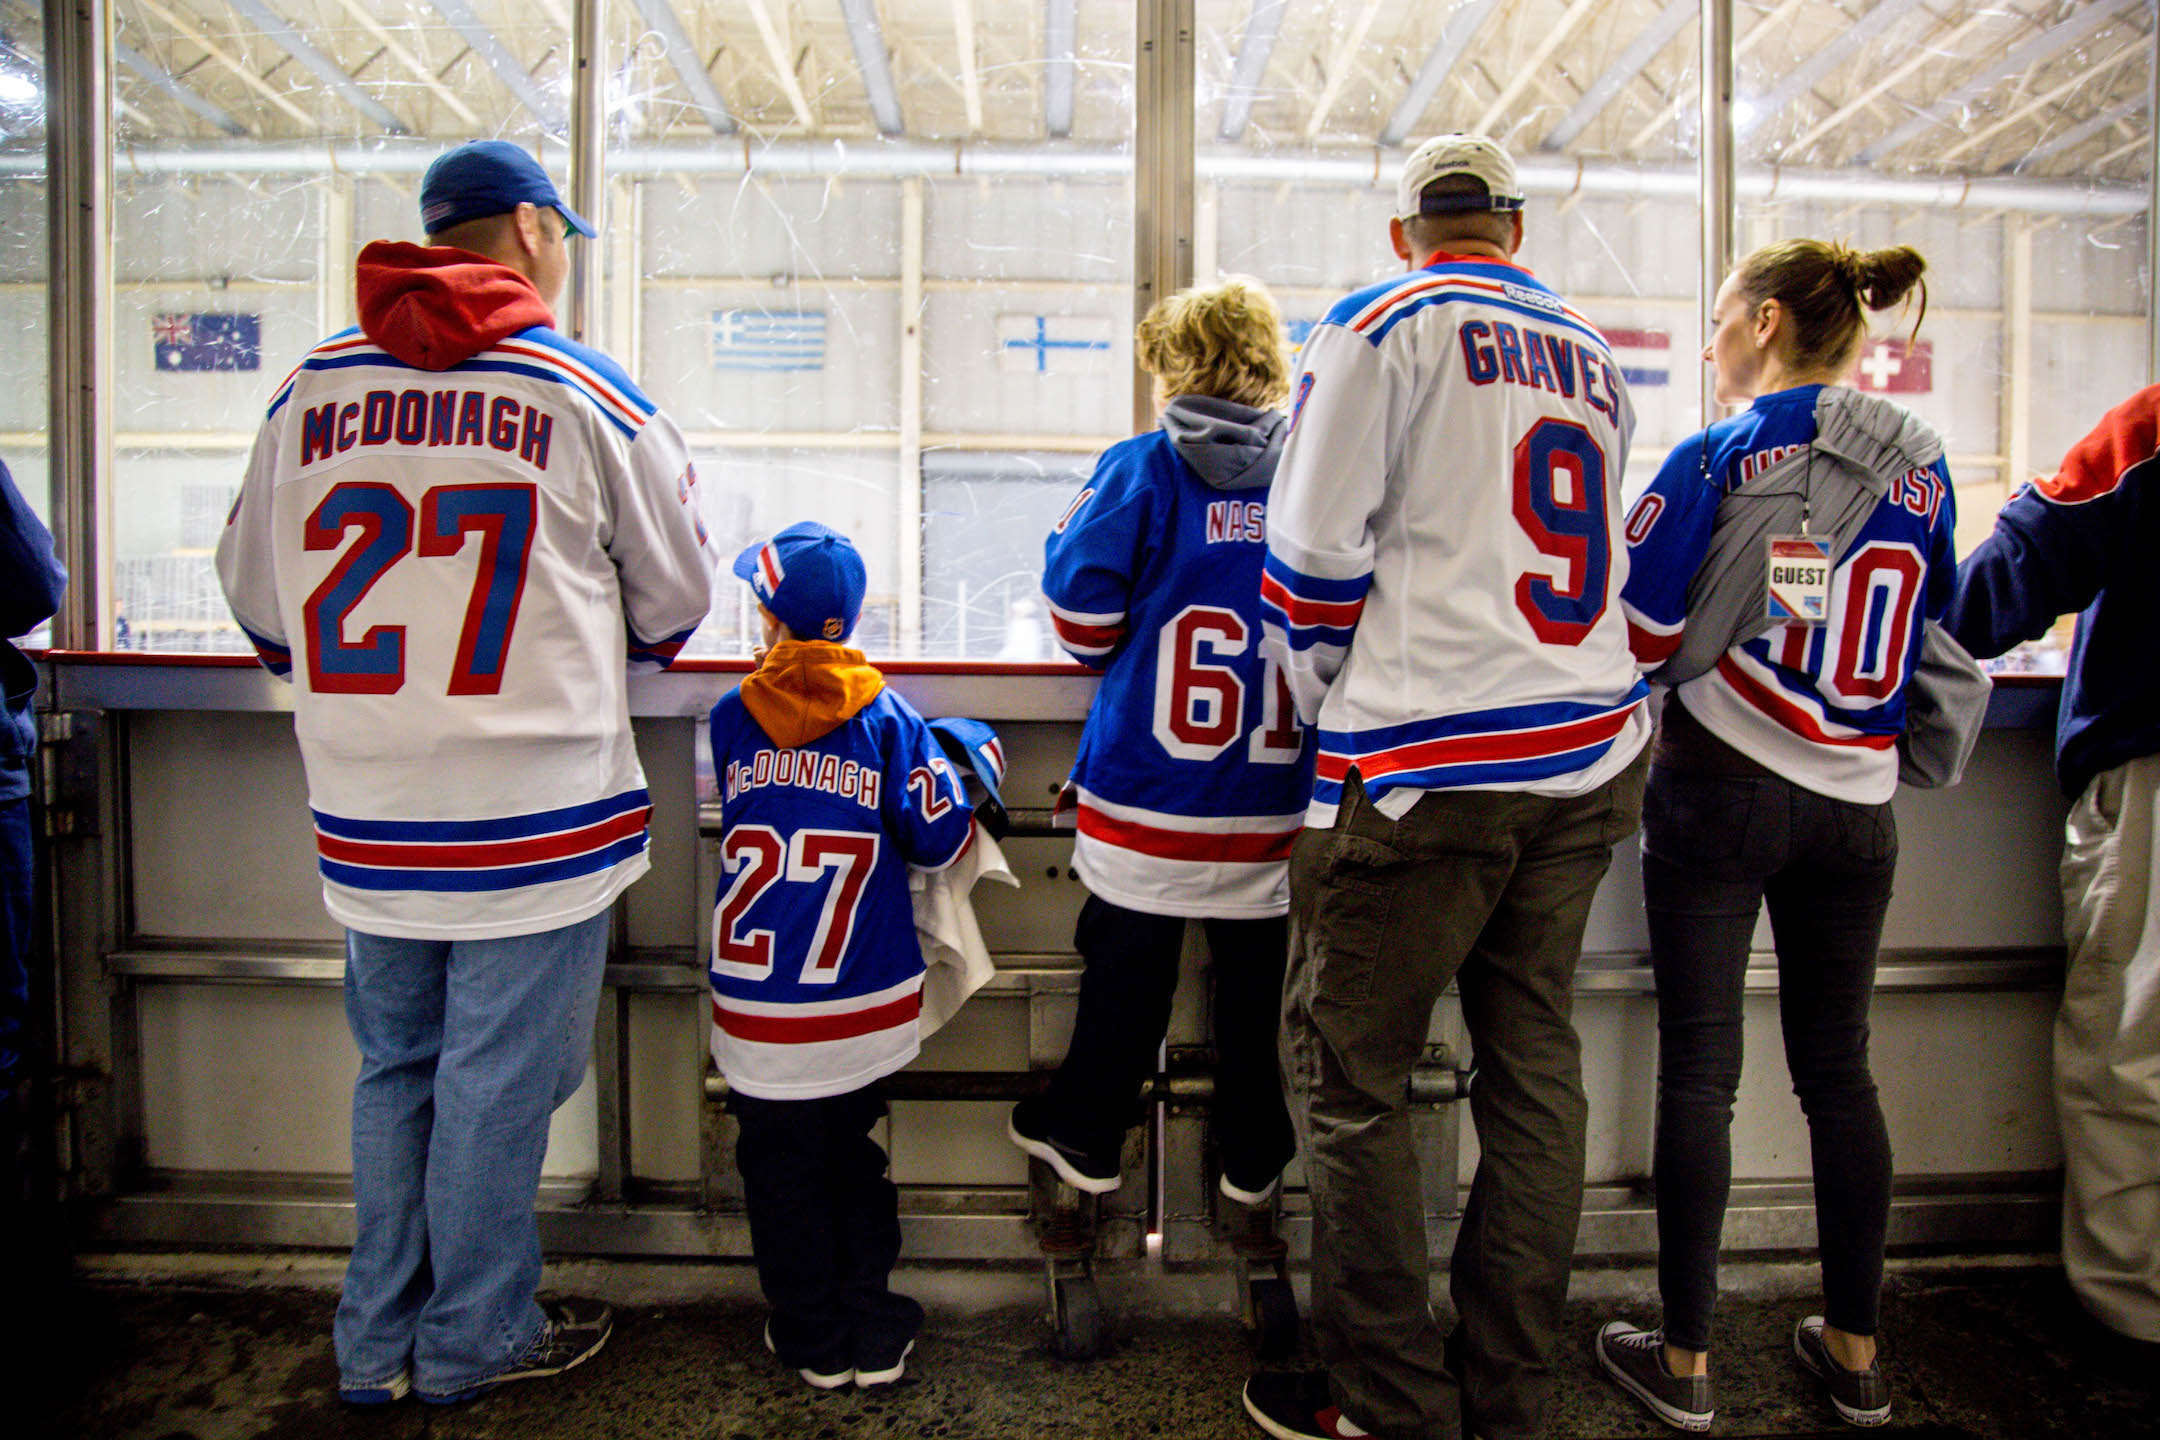 Family in hockey jerseys watching hockey game at rink